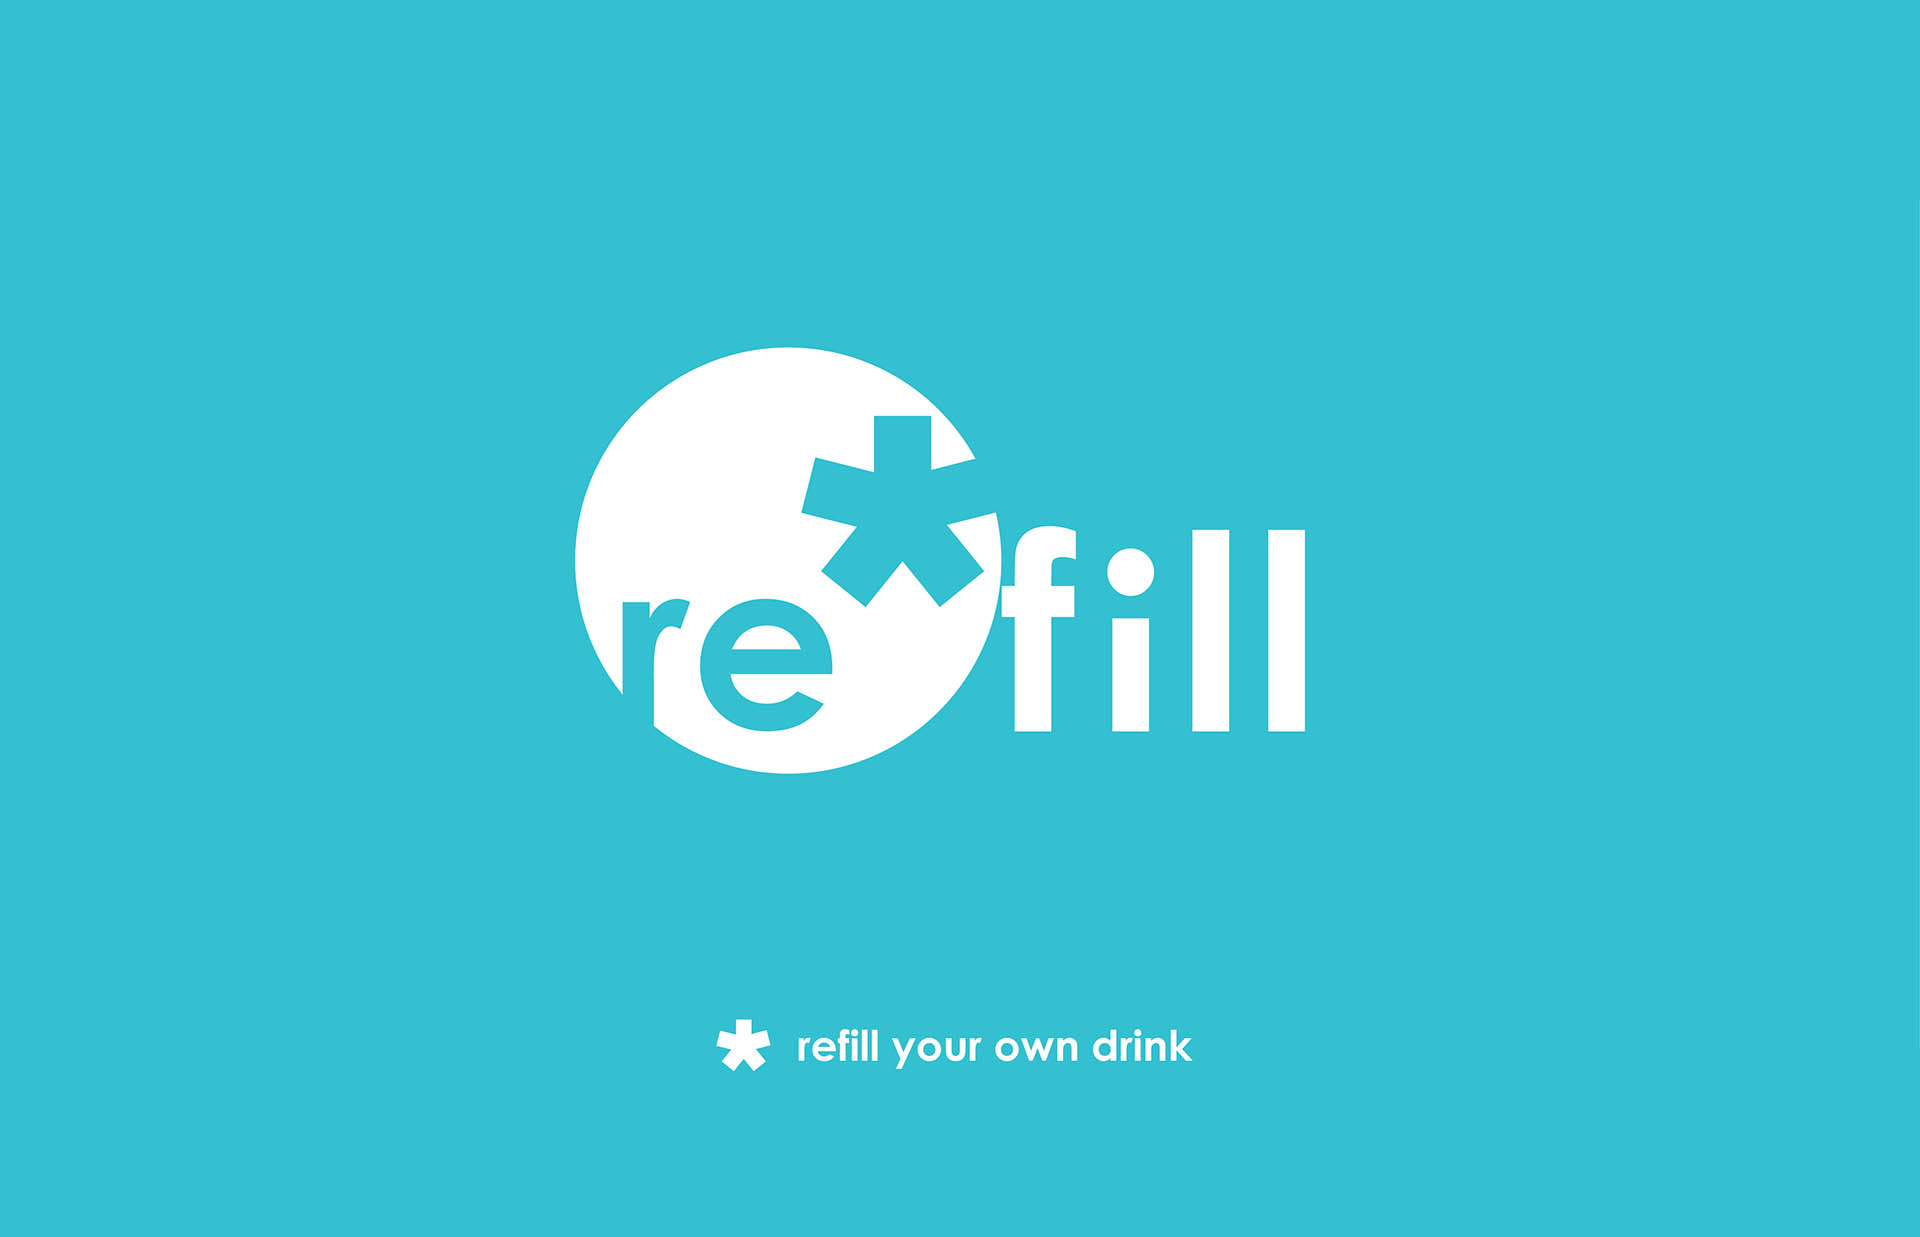 Within Restore you can refill drink containers